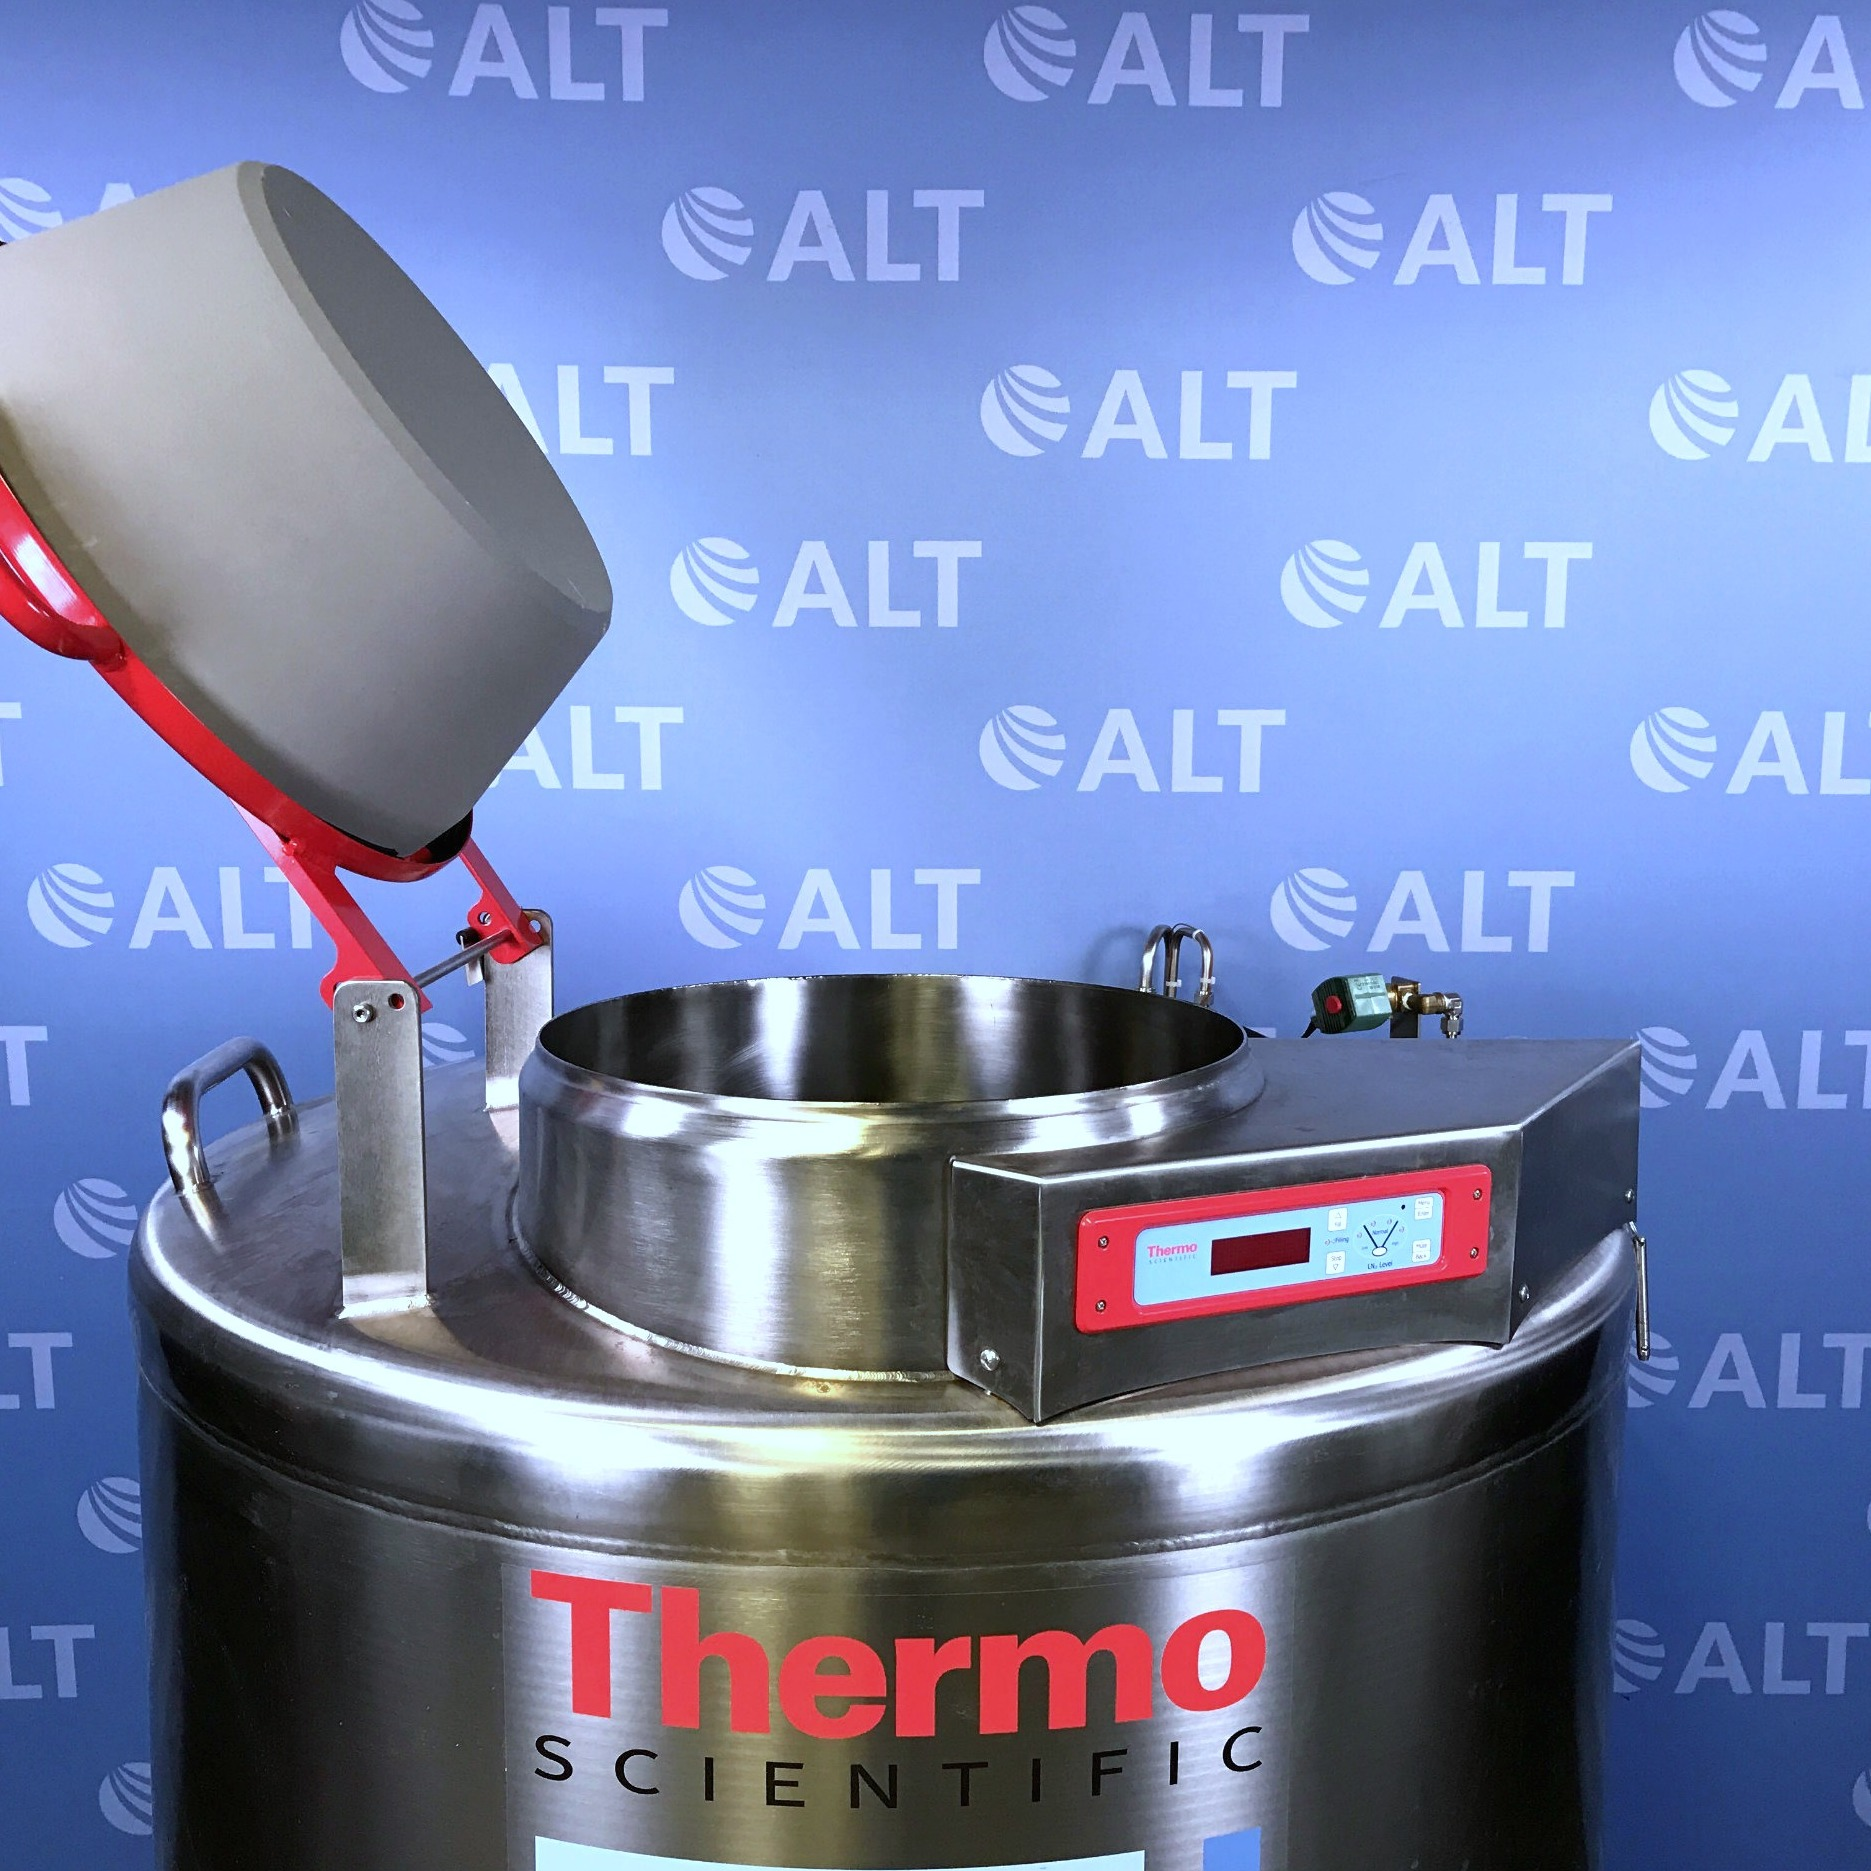 Thermo CE8140 CryoExtra High Efficiency Cryogenic Storage Image